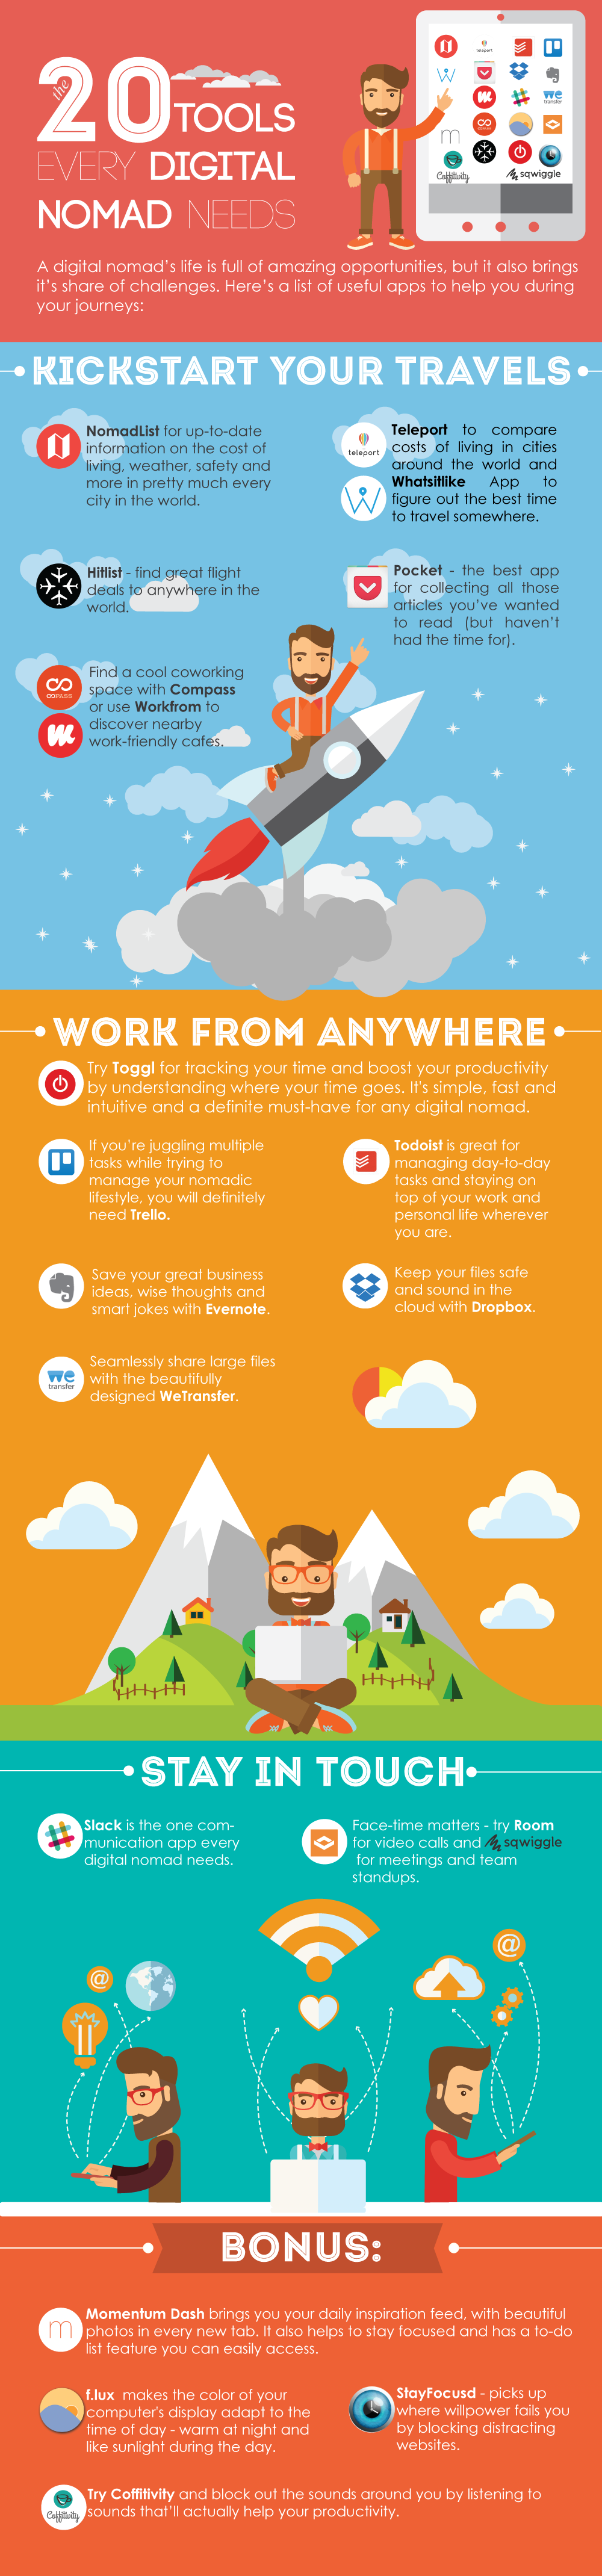 20 Best Tools For Digital Nomads - #infographic